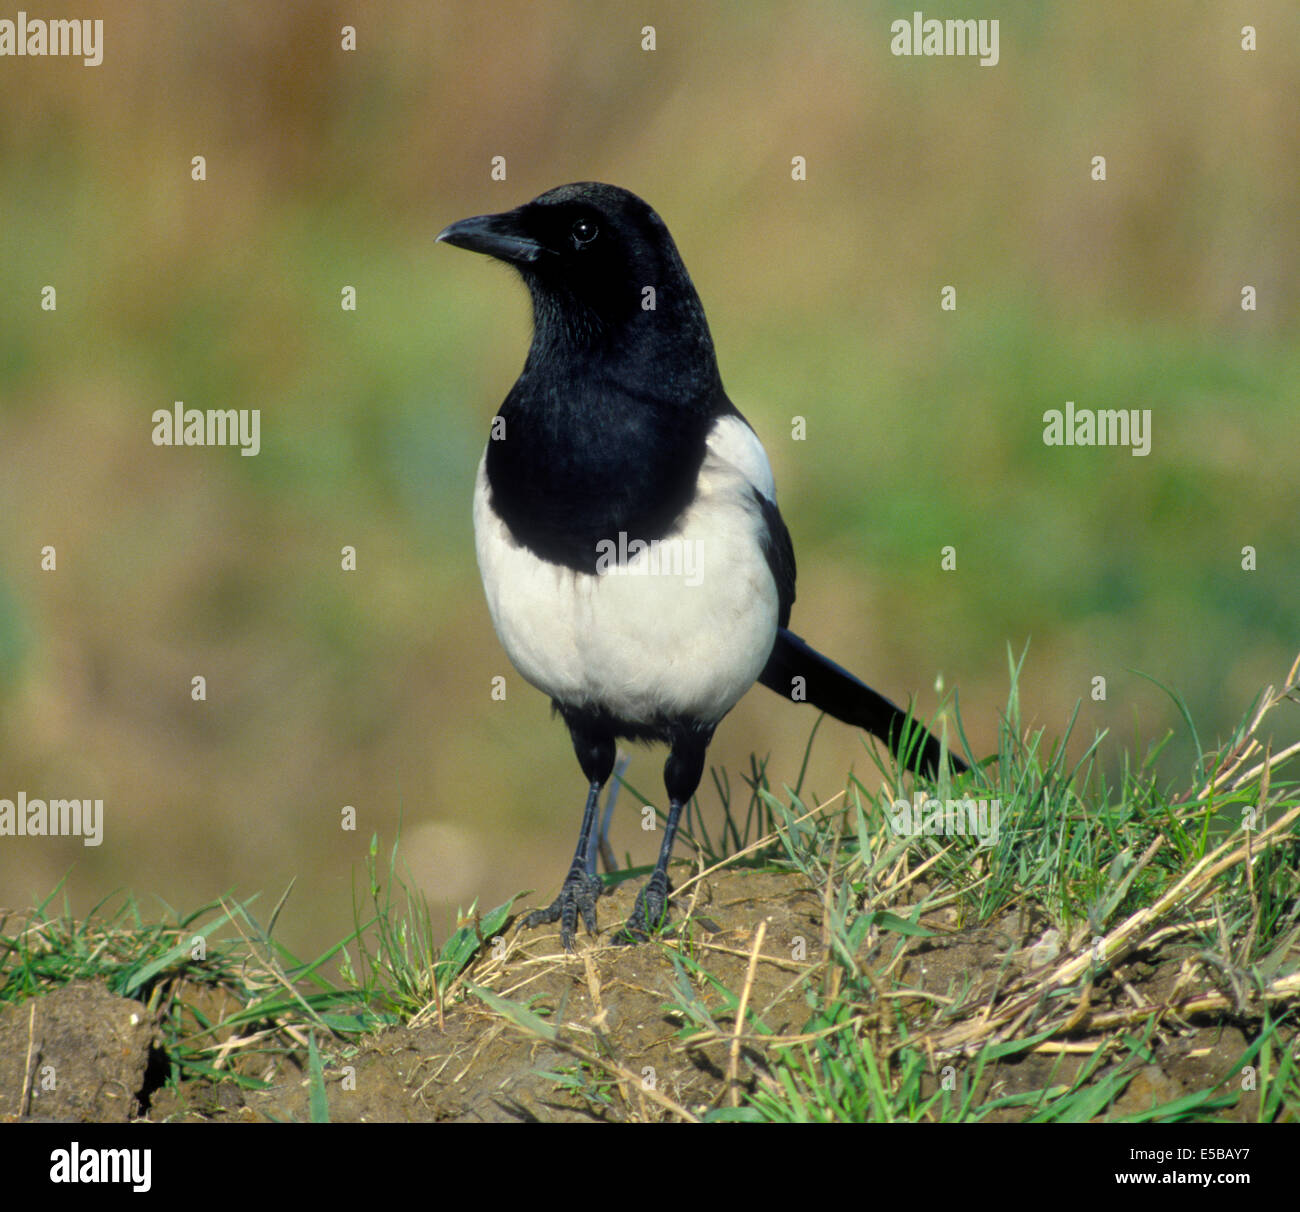 Magpie Pica pica L 45-50cm. Unmistakable black and white, long-tailed bird. Seen in small groups outside breeding - Stock Image